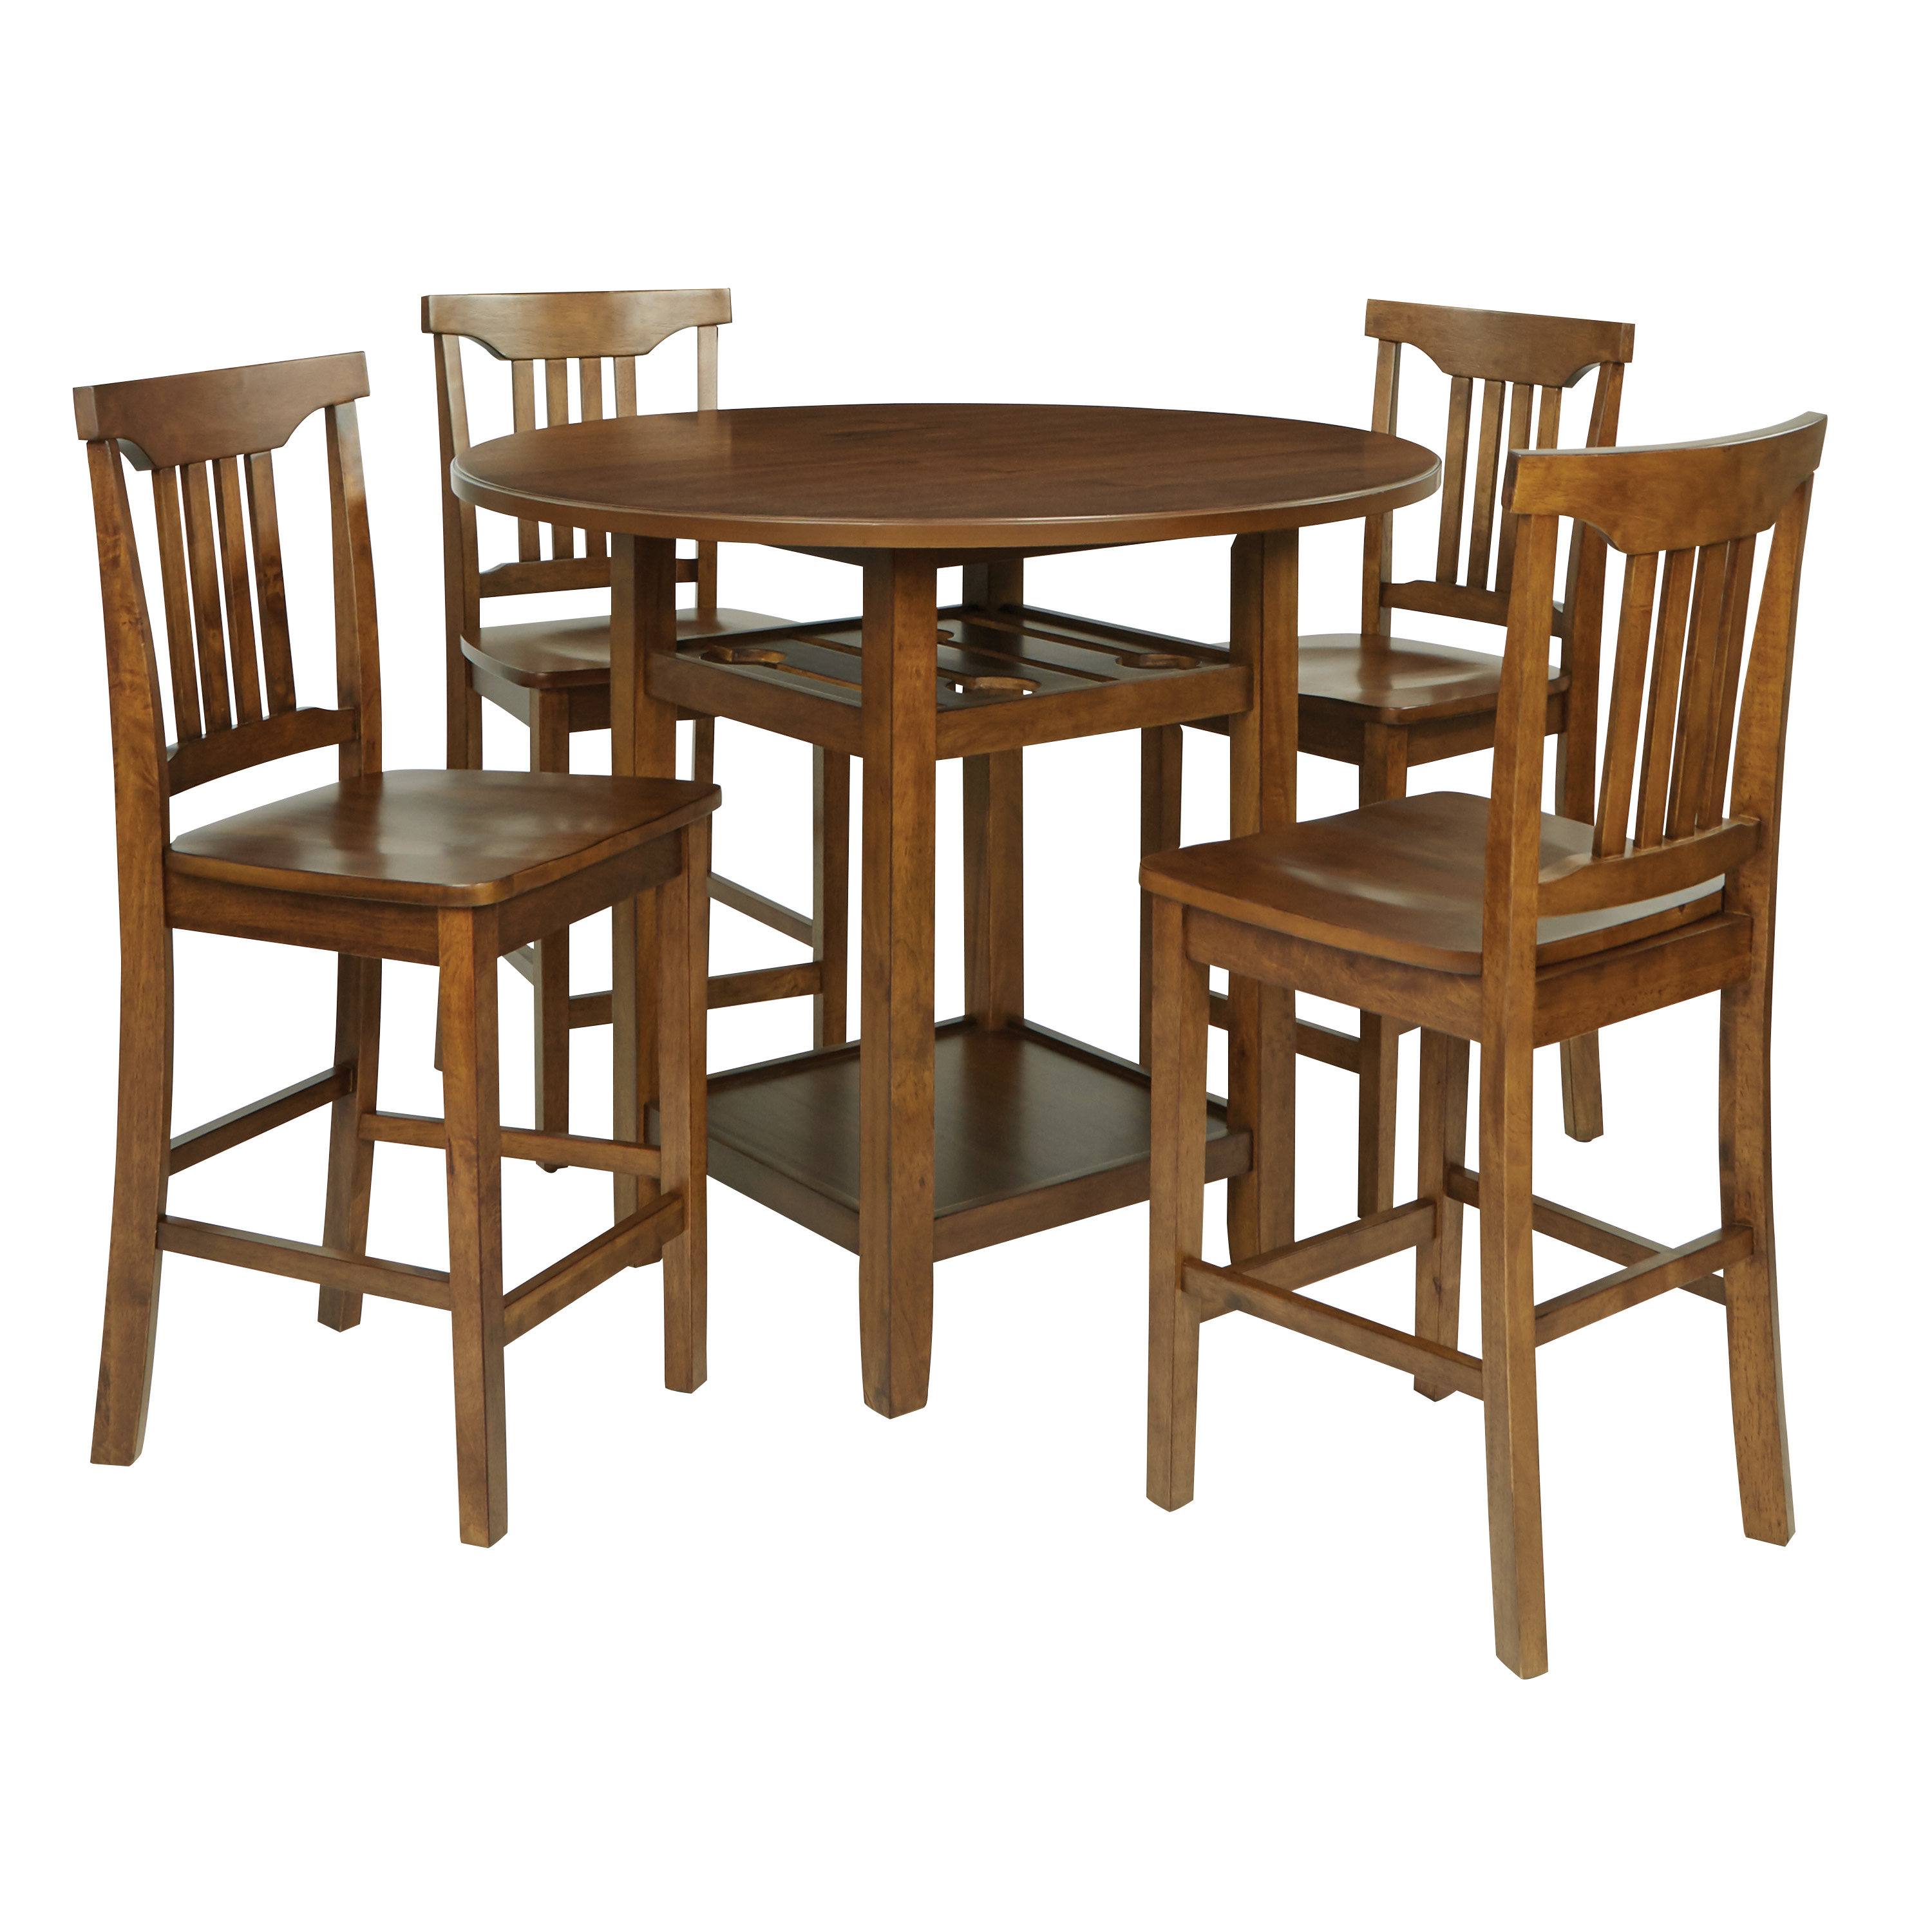 Newest 5 Piece Breakfast Nook Dining Sets regarding Breakwater Bay East Village 5 Piece Counter Height Breakfast Nook